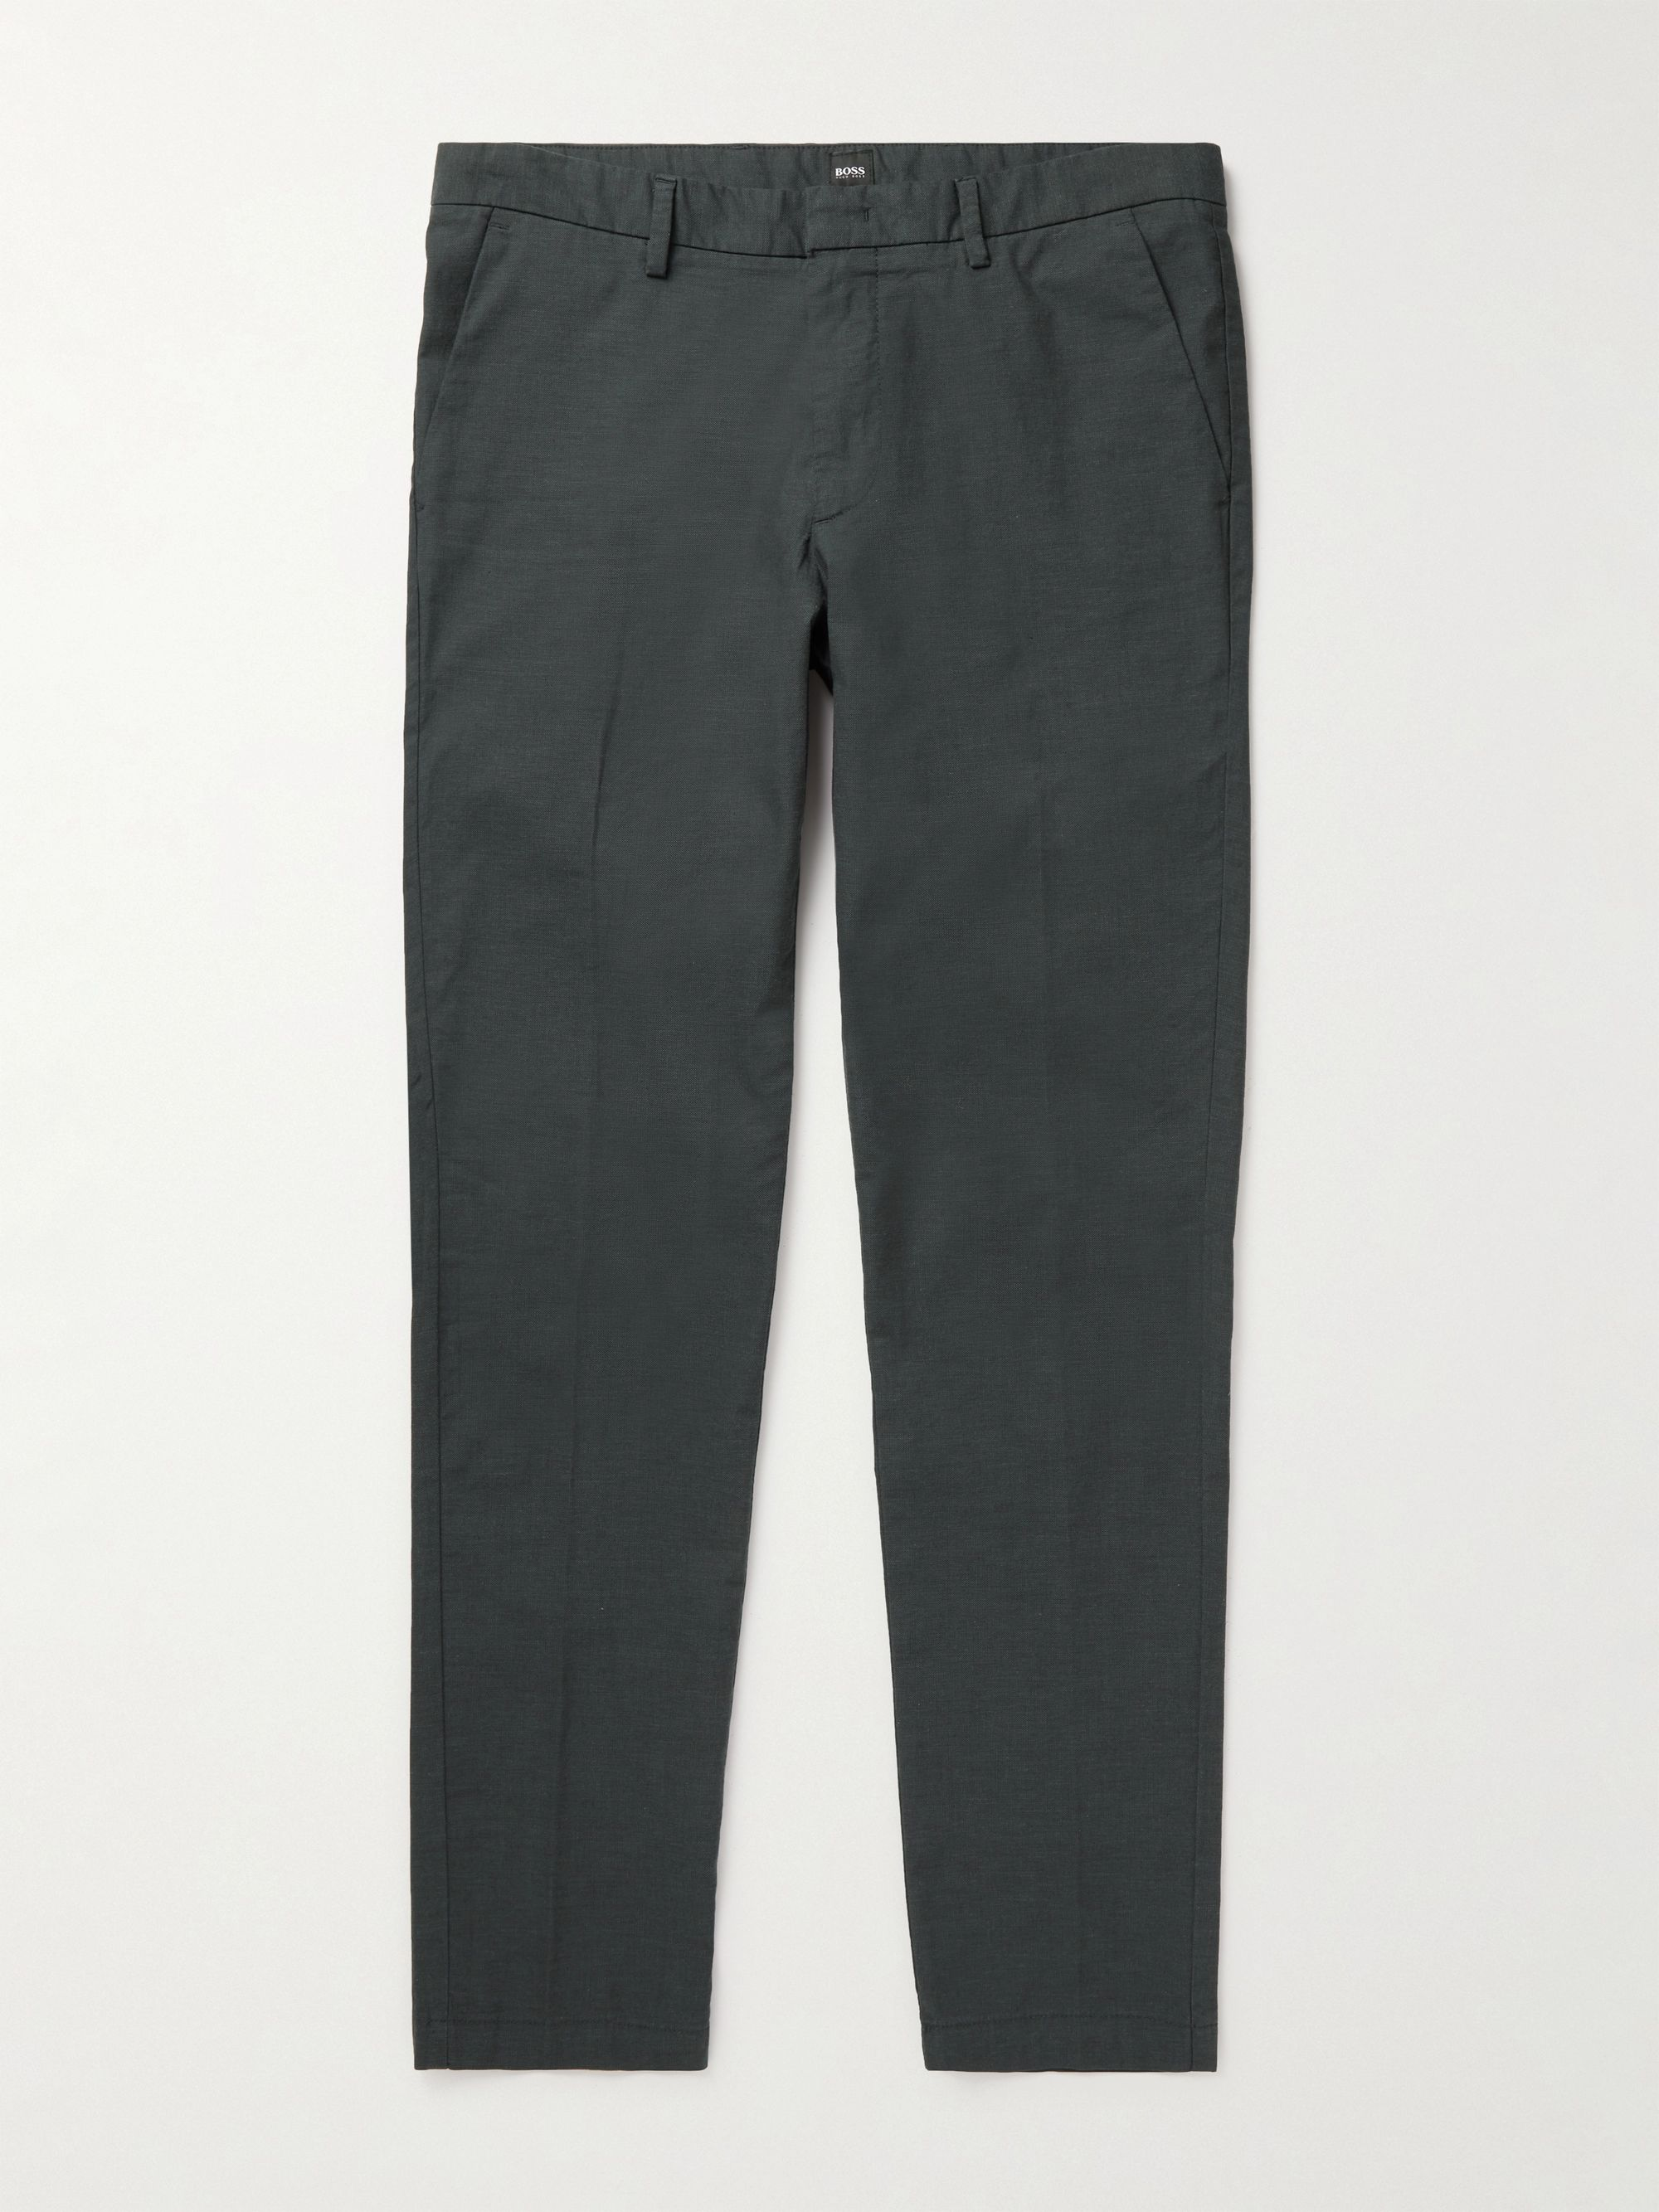 HUGO BOSS Slim-Fit Tapered Cotton-Blend Twill Trousers